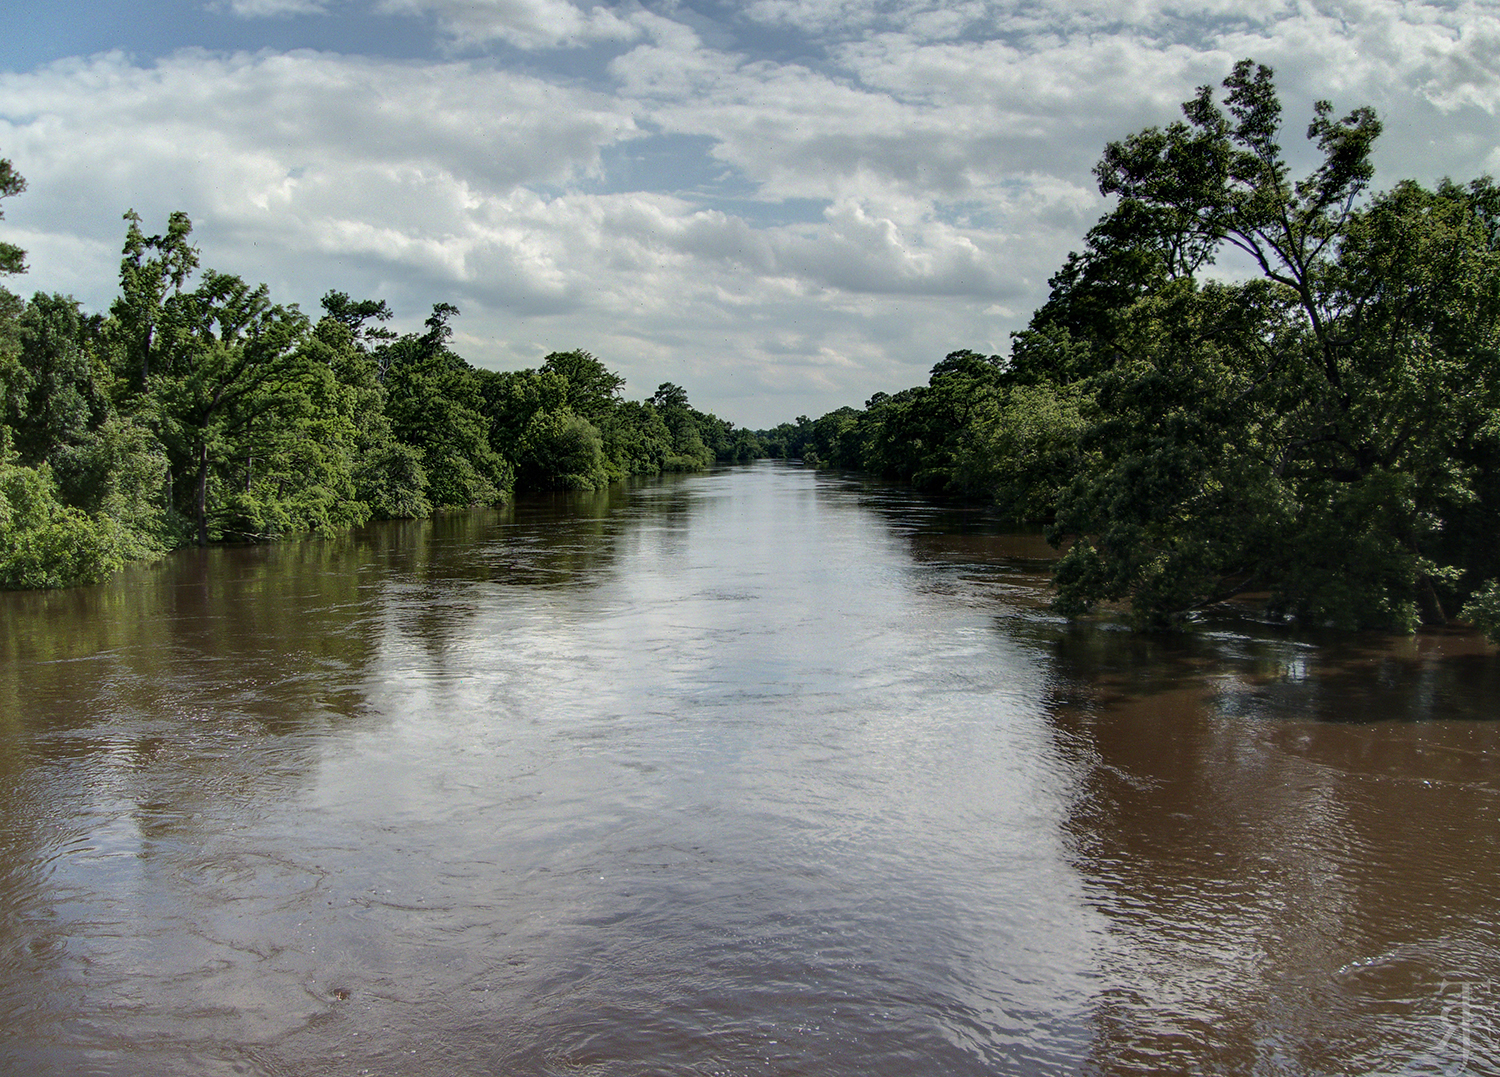 A view of the Neuse River from N.C. Highway 581 in Goldsboro, after heavy rains.